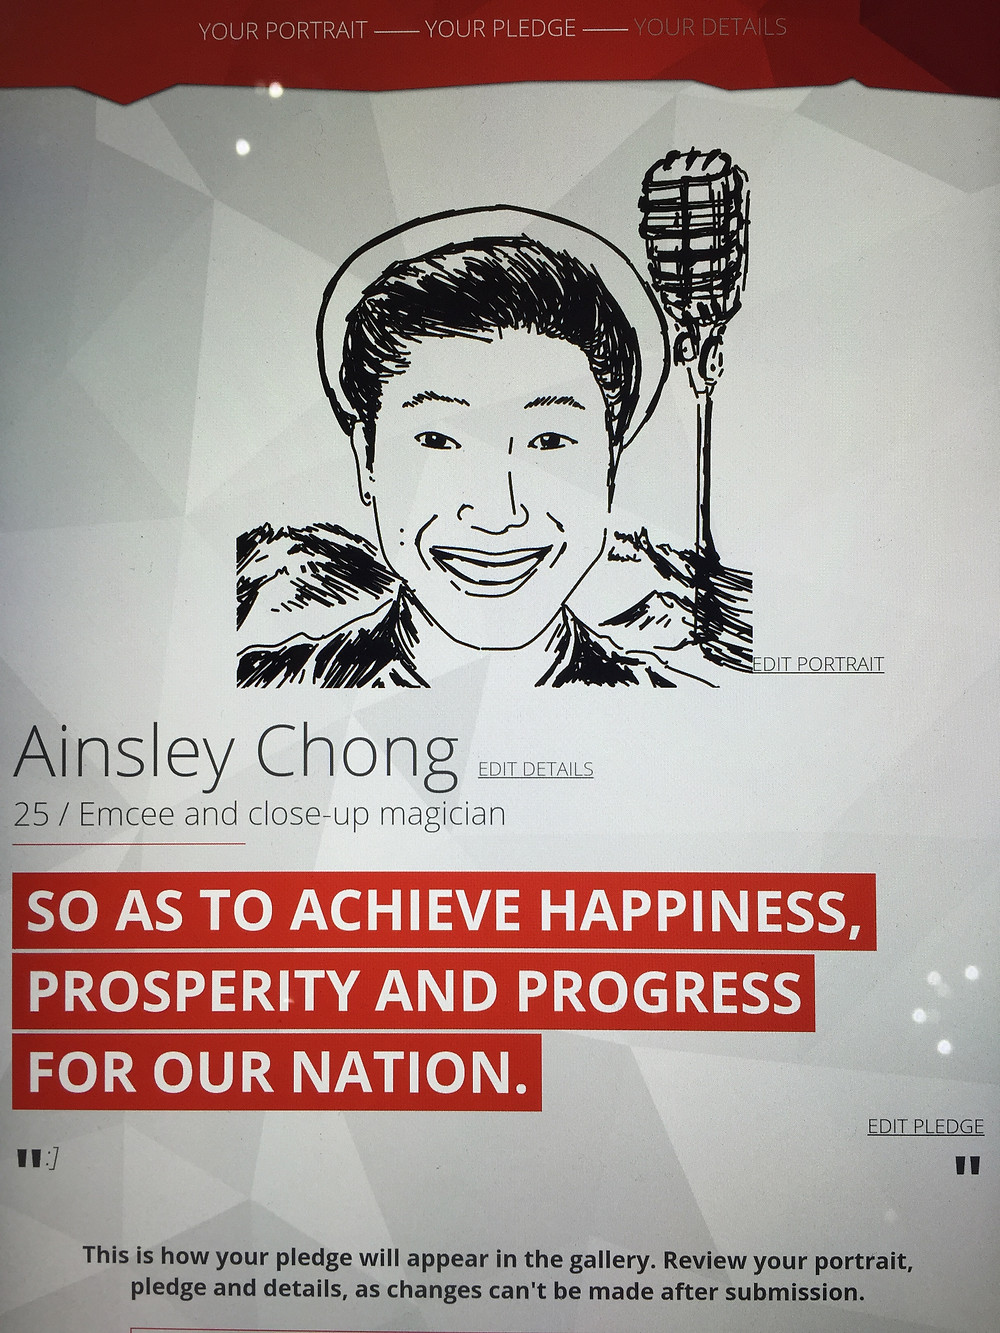 Emcee Singapore - Ainsley Chong, National Gallery Singapore Portraits of the People